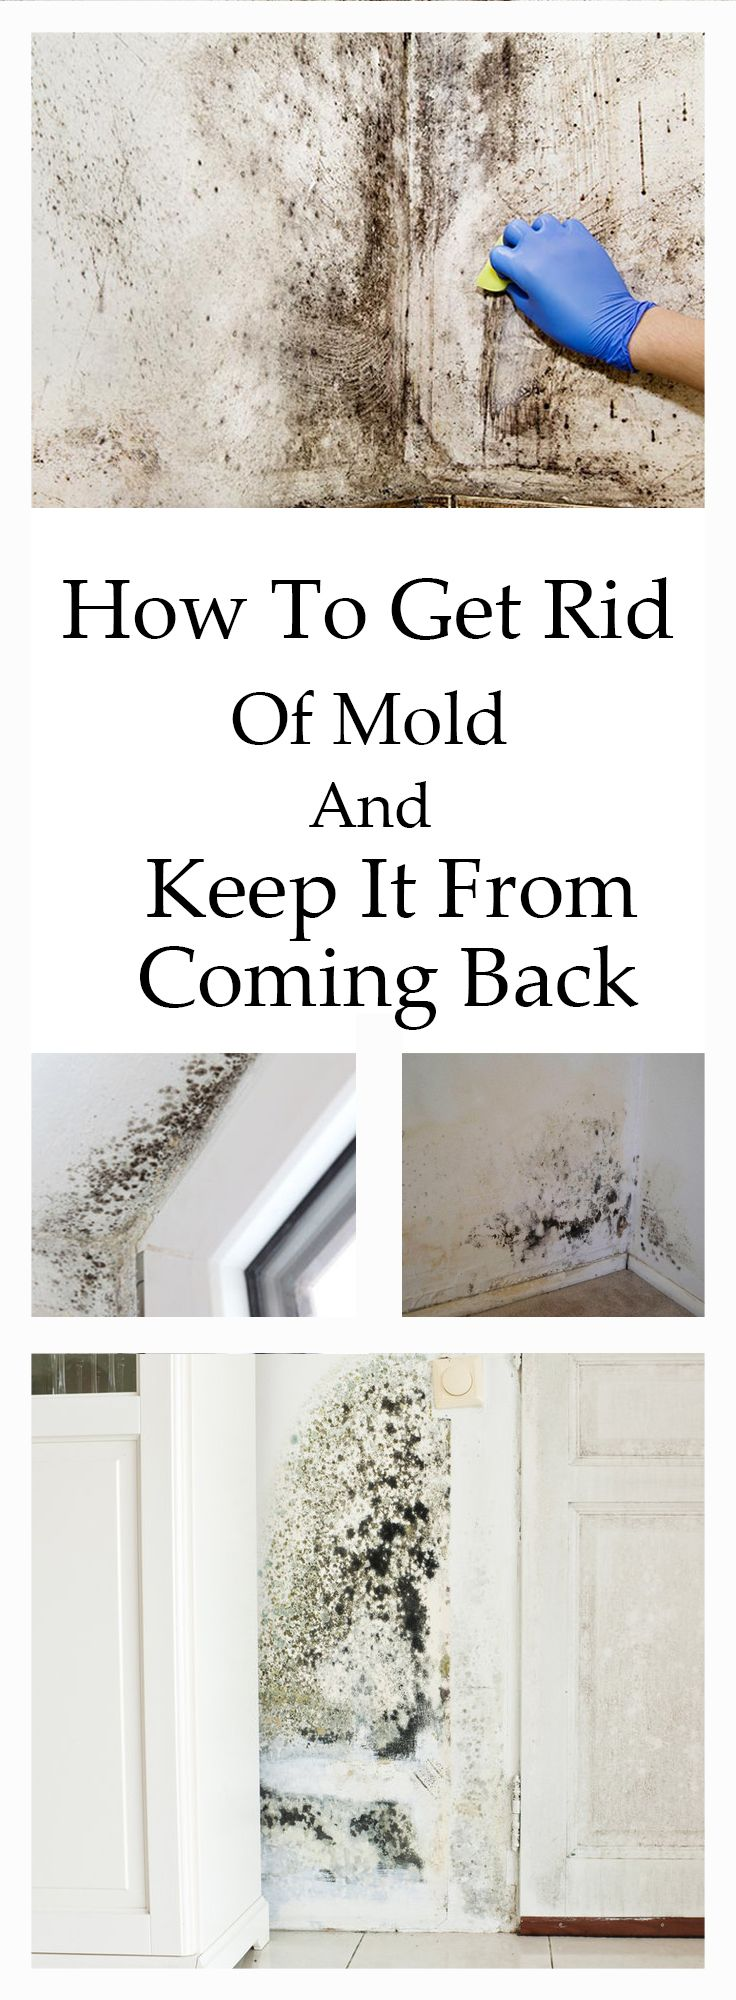 how to get rid of mold and keep it from coming back home yard limpeza limpar dicas. Black Bedroom Furniture Sets. Home Design Ideas